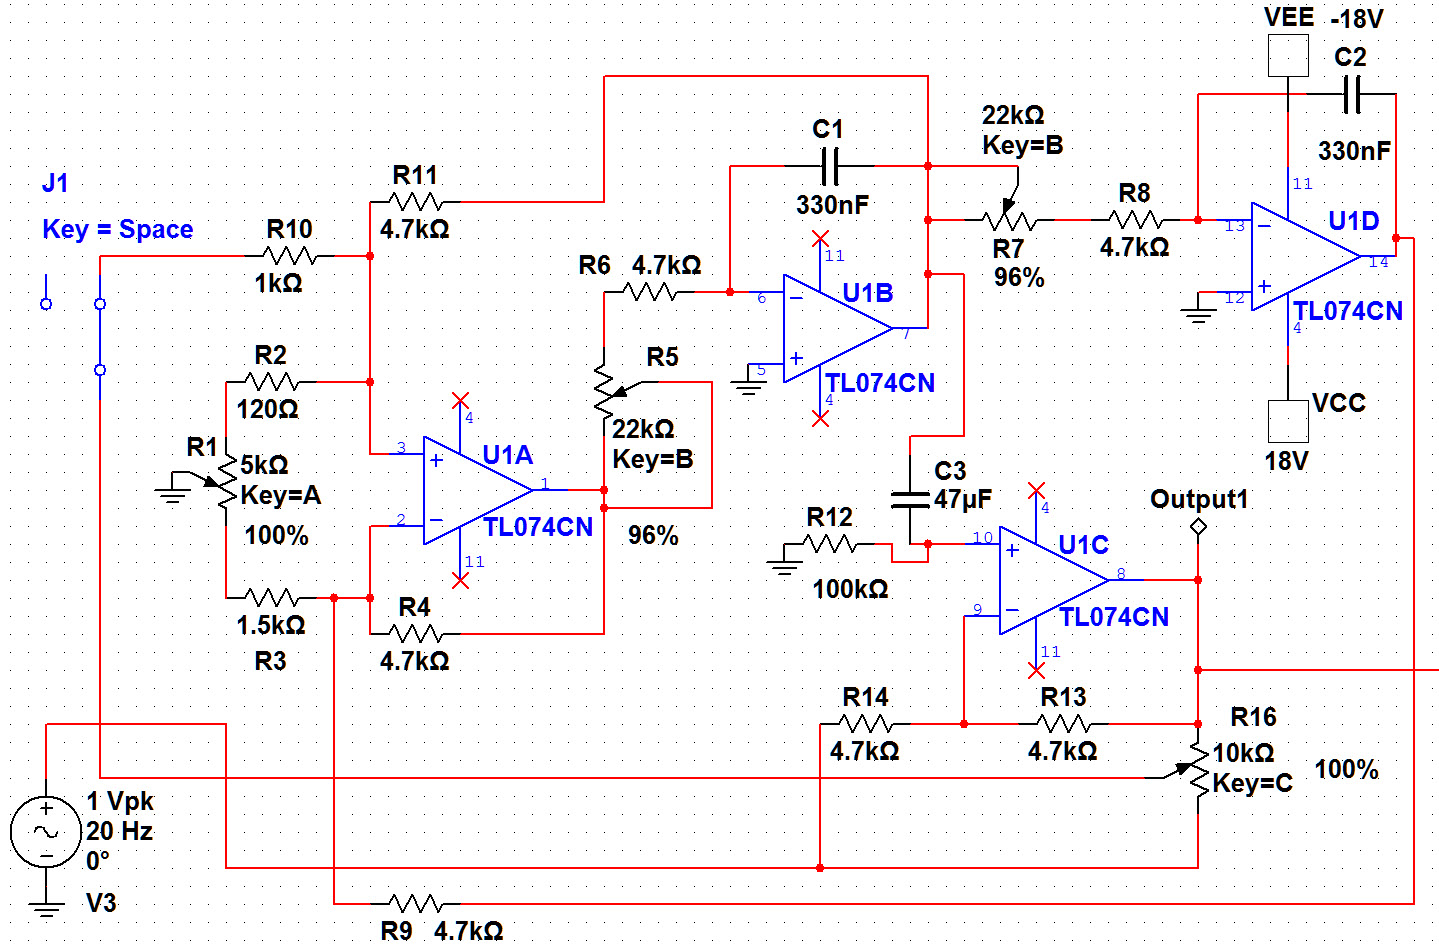 Custom PCB for DIY electronics: Simulation of 8 band parametric equalizer